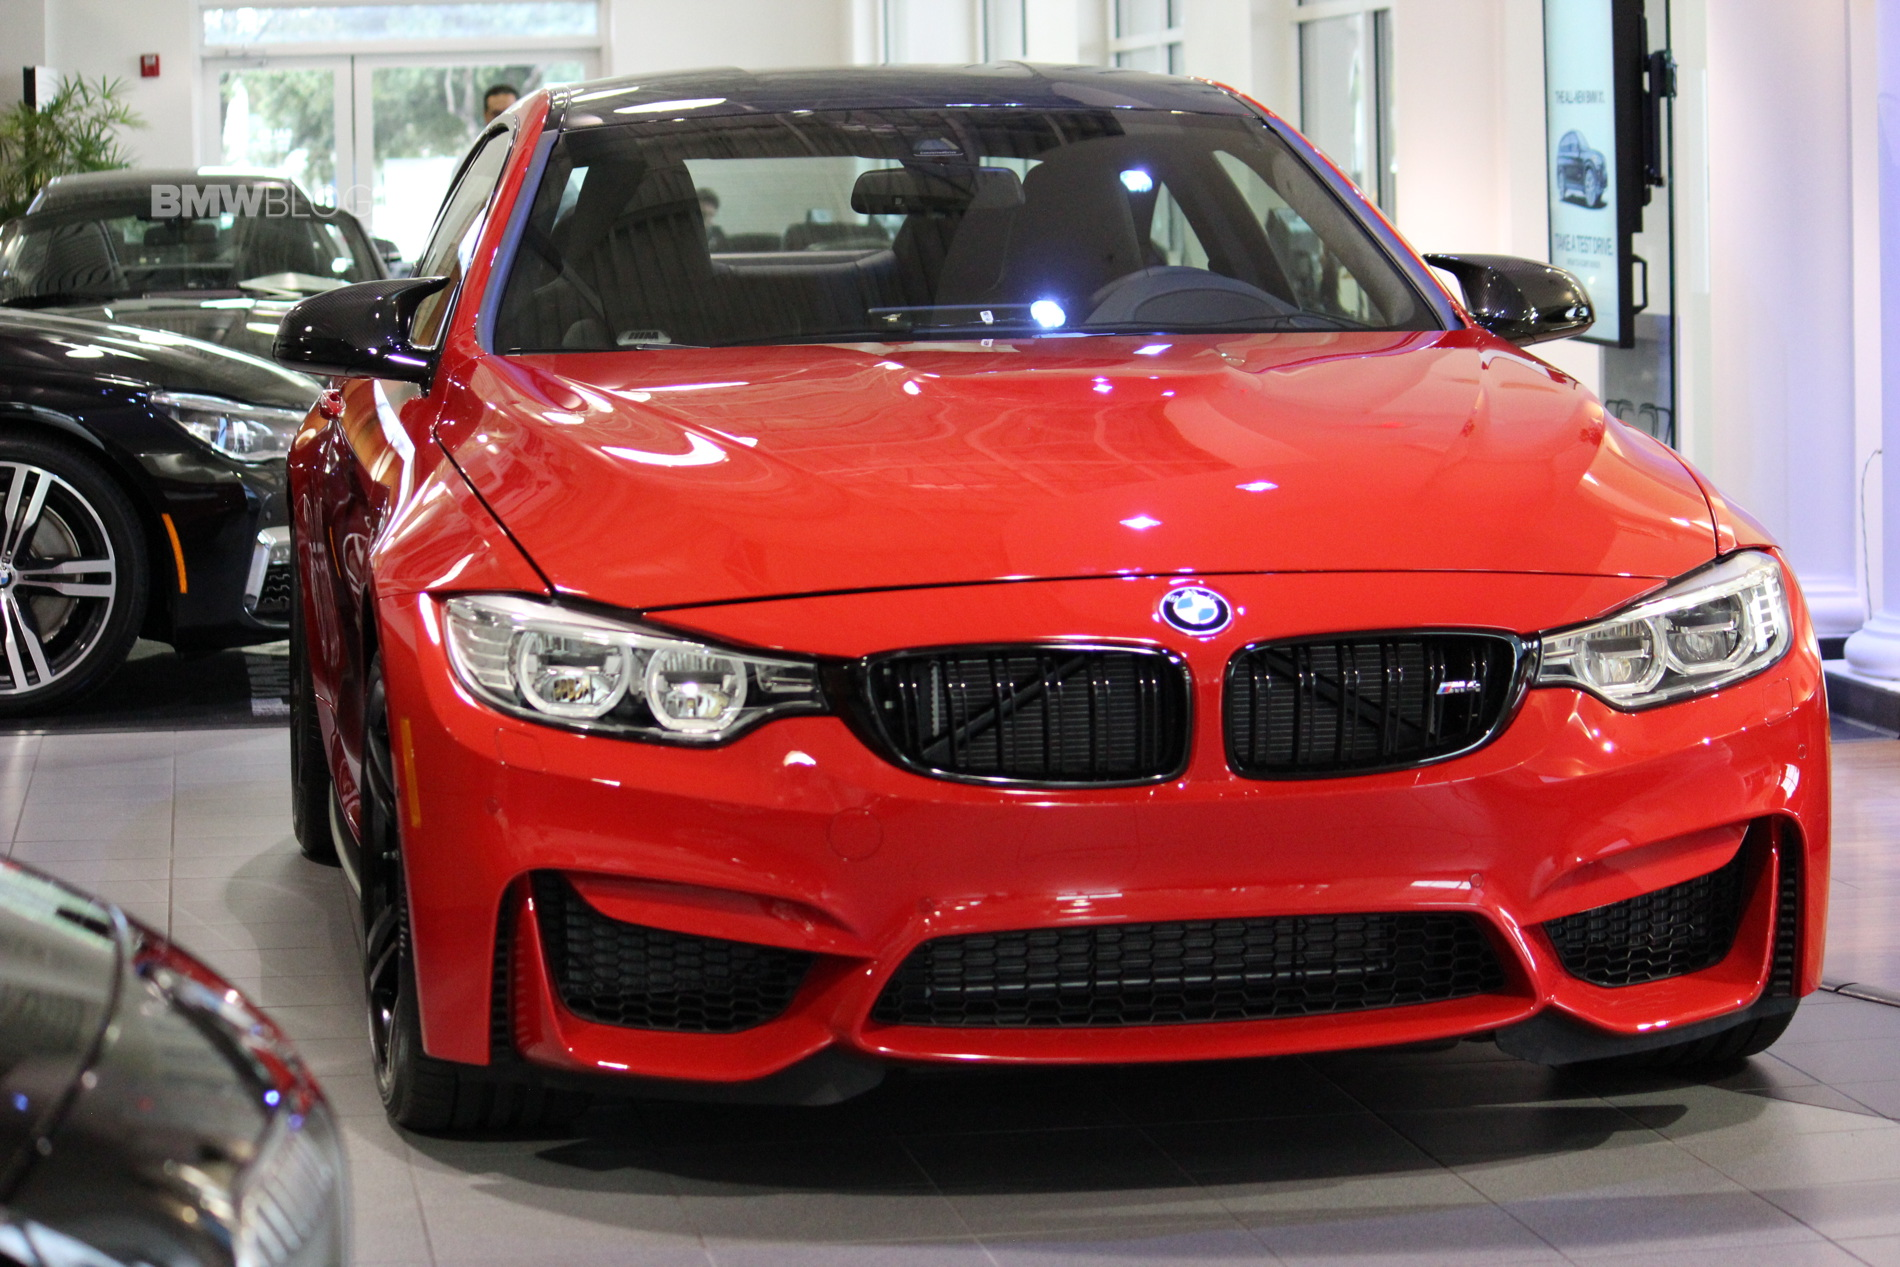 BMW M4 Ferrari Red images 58